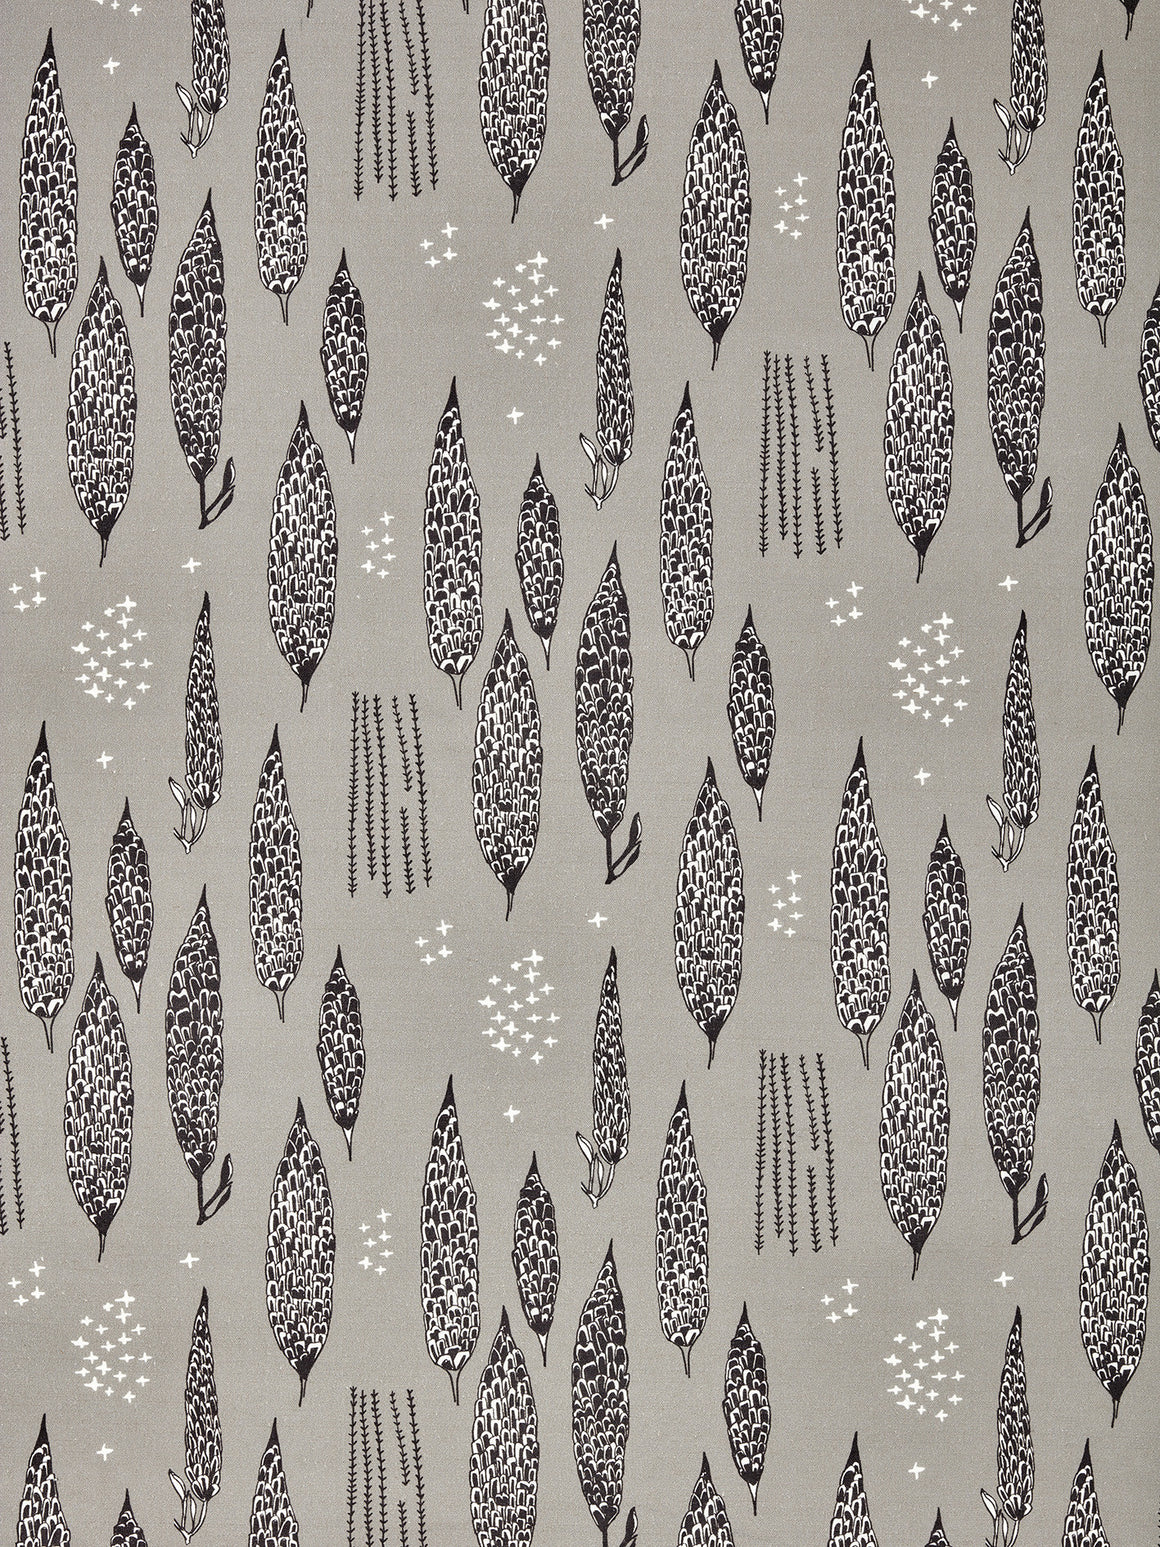 Graphic Rosemary Sprig Pattern Printed Linen Cotton Canvas Home Decor Home Decor Fabric in Light Dove Grey and Black for curtain, blinds or upholstery ships from Canada (USA)